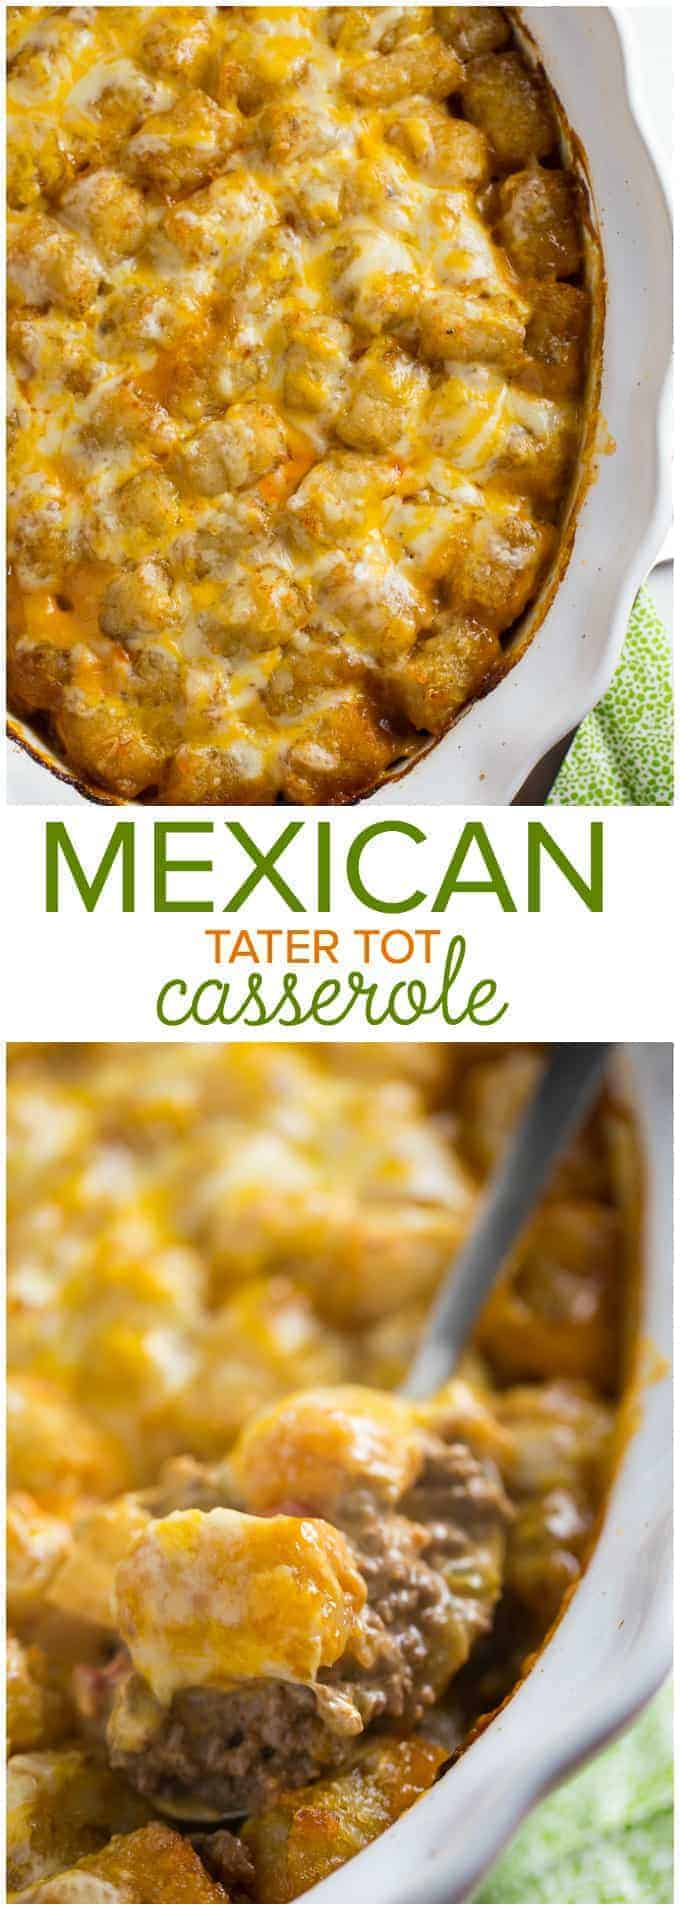 Mexican Tater Tot Casserole - This Mexican Tater Tot Casserole was a hit with my family! It was spicy, hearty and tasty. Comfort food for the win.